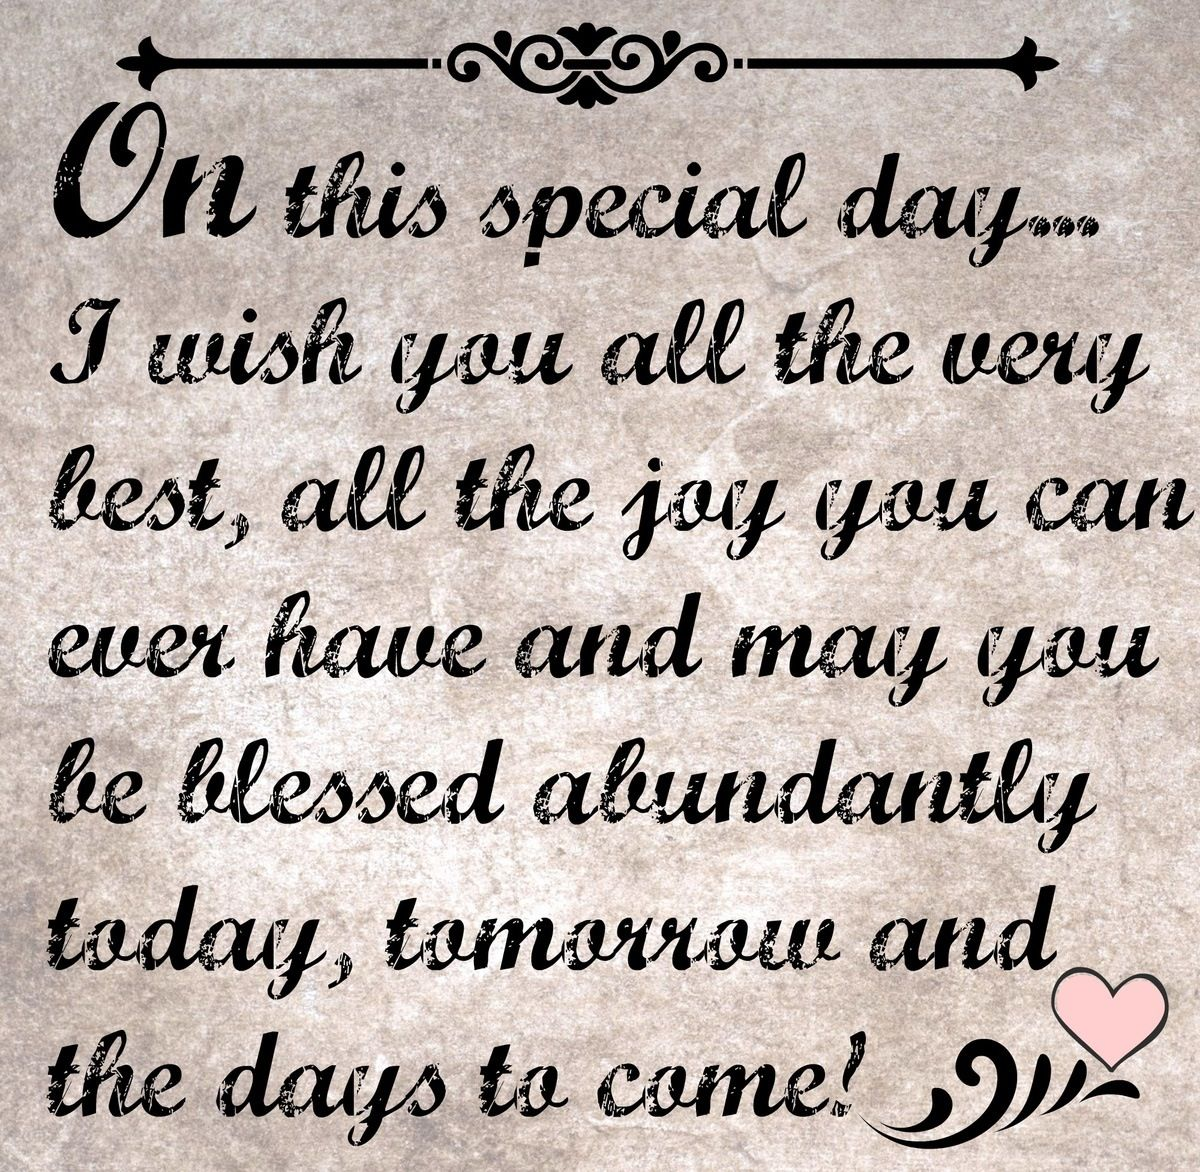 For Theresa on her Special Day! God Bless, have many years ...